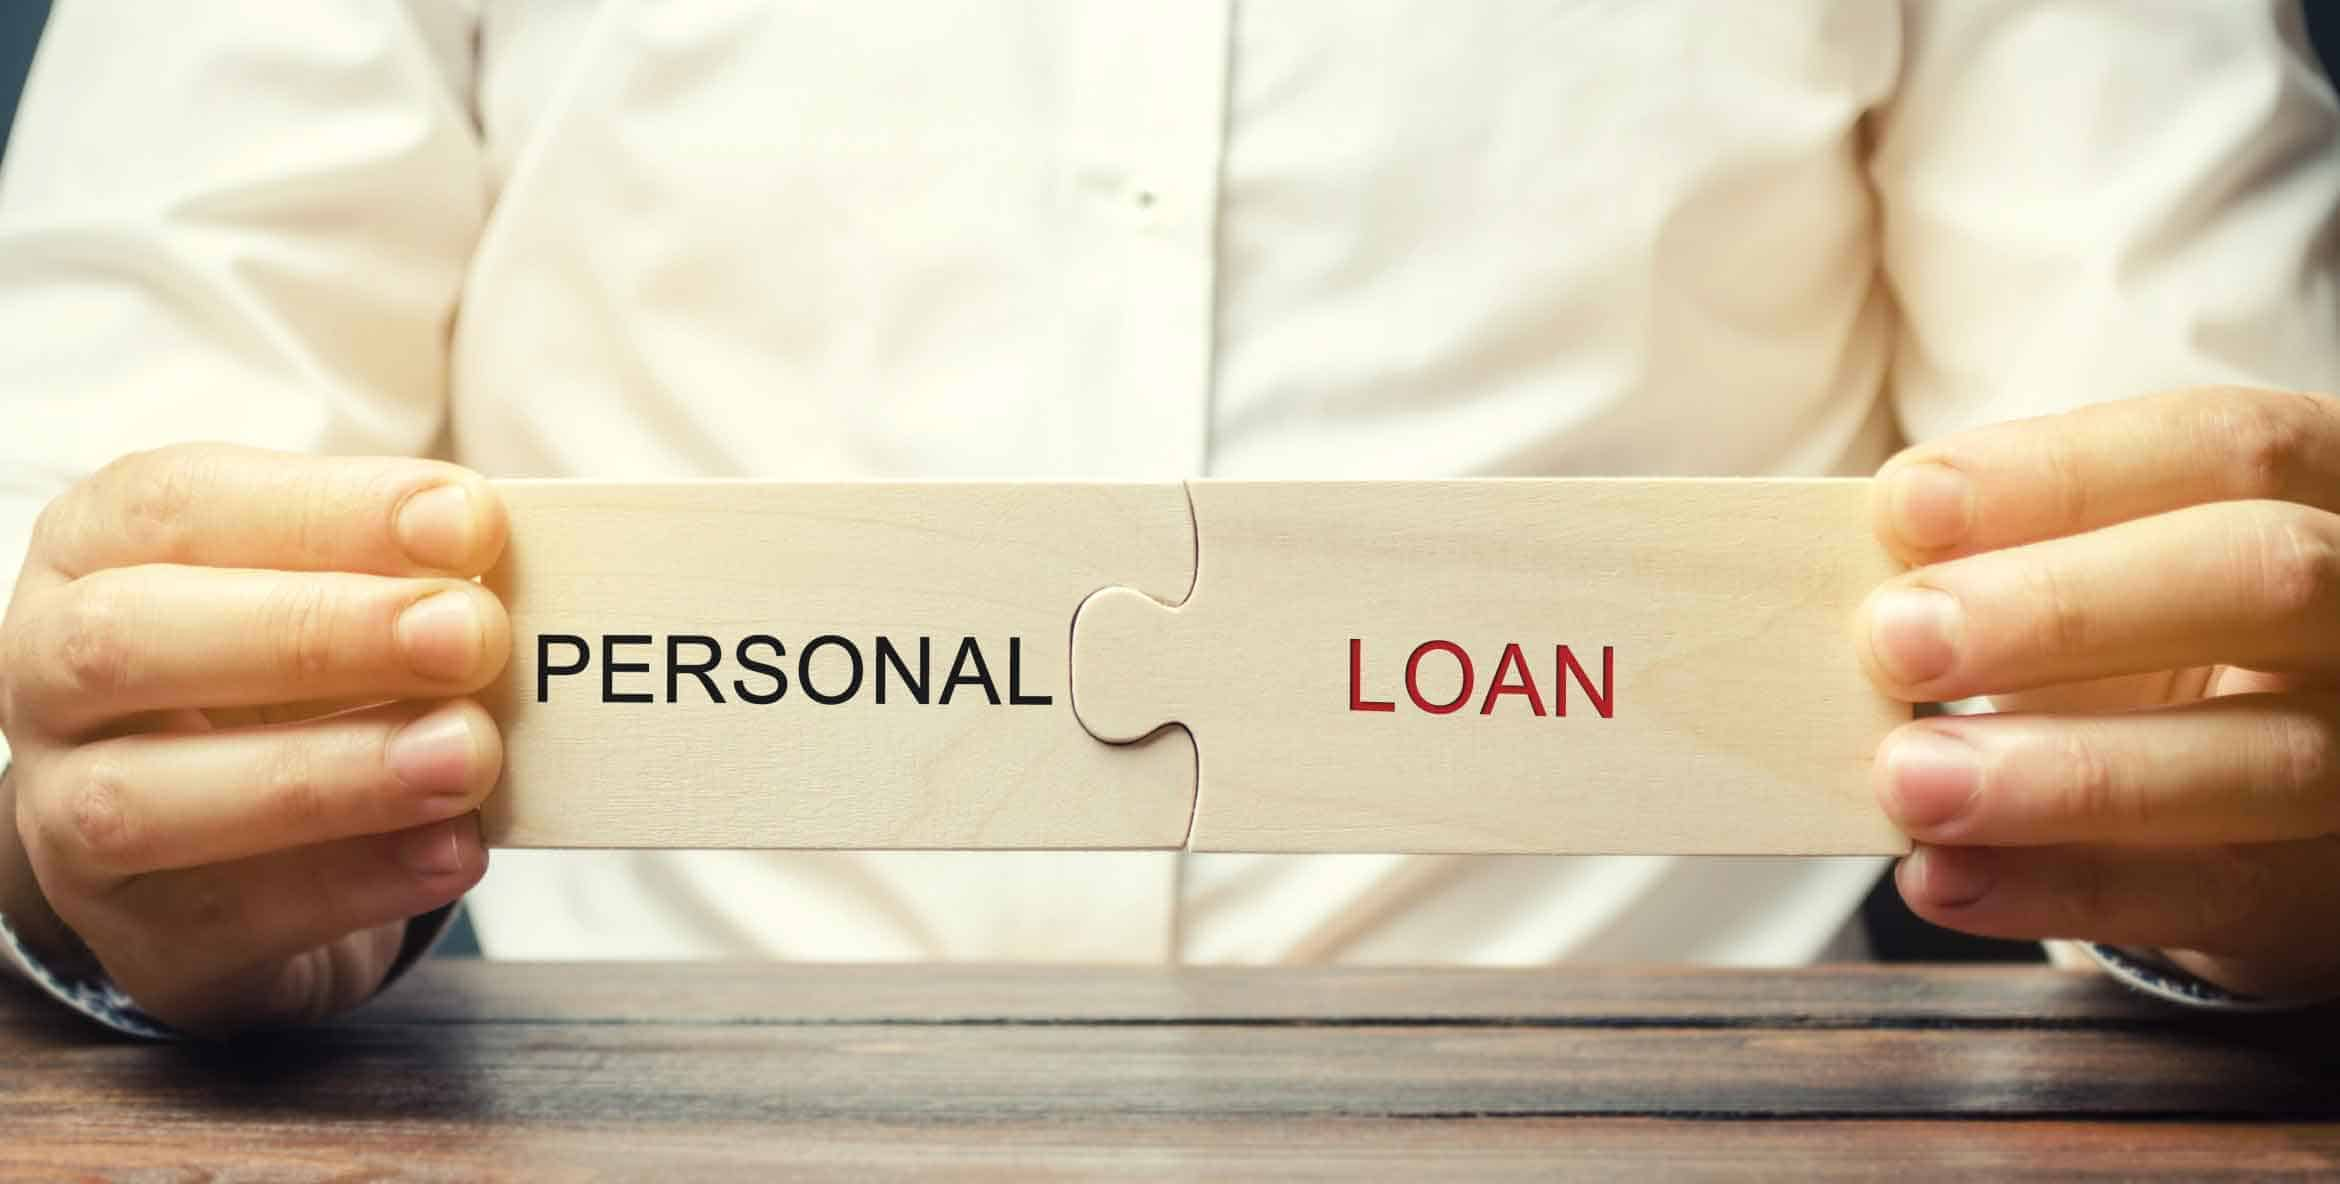 Personal Loan to Consolidate Debt